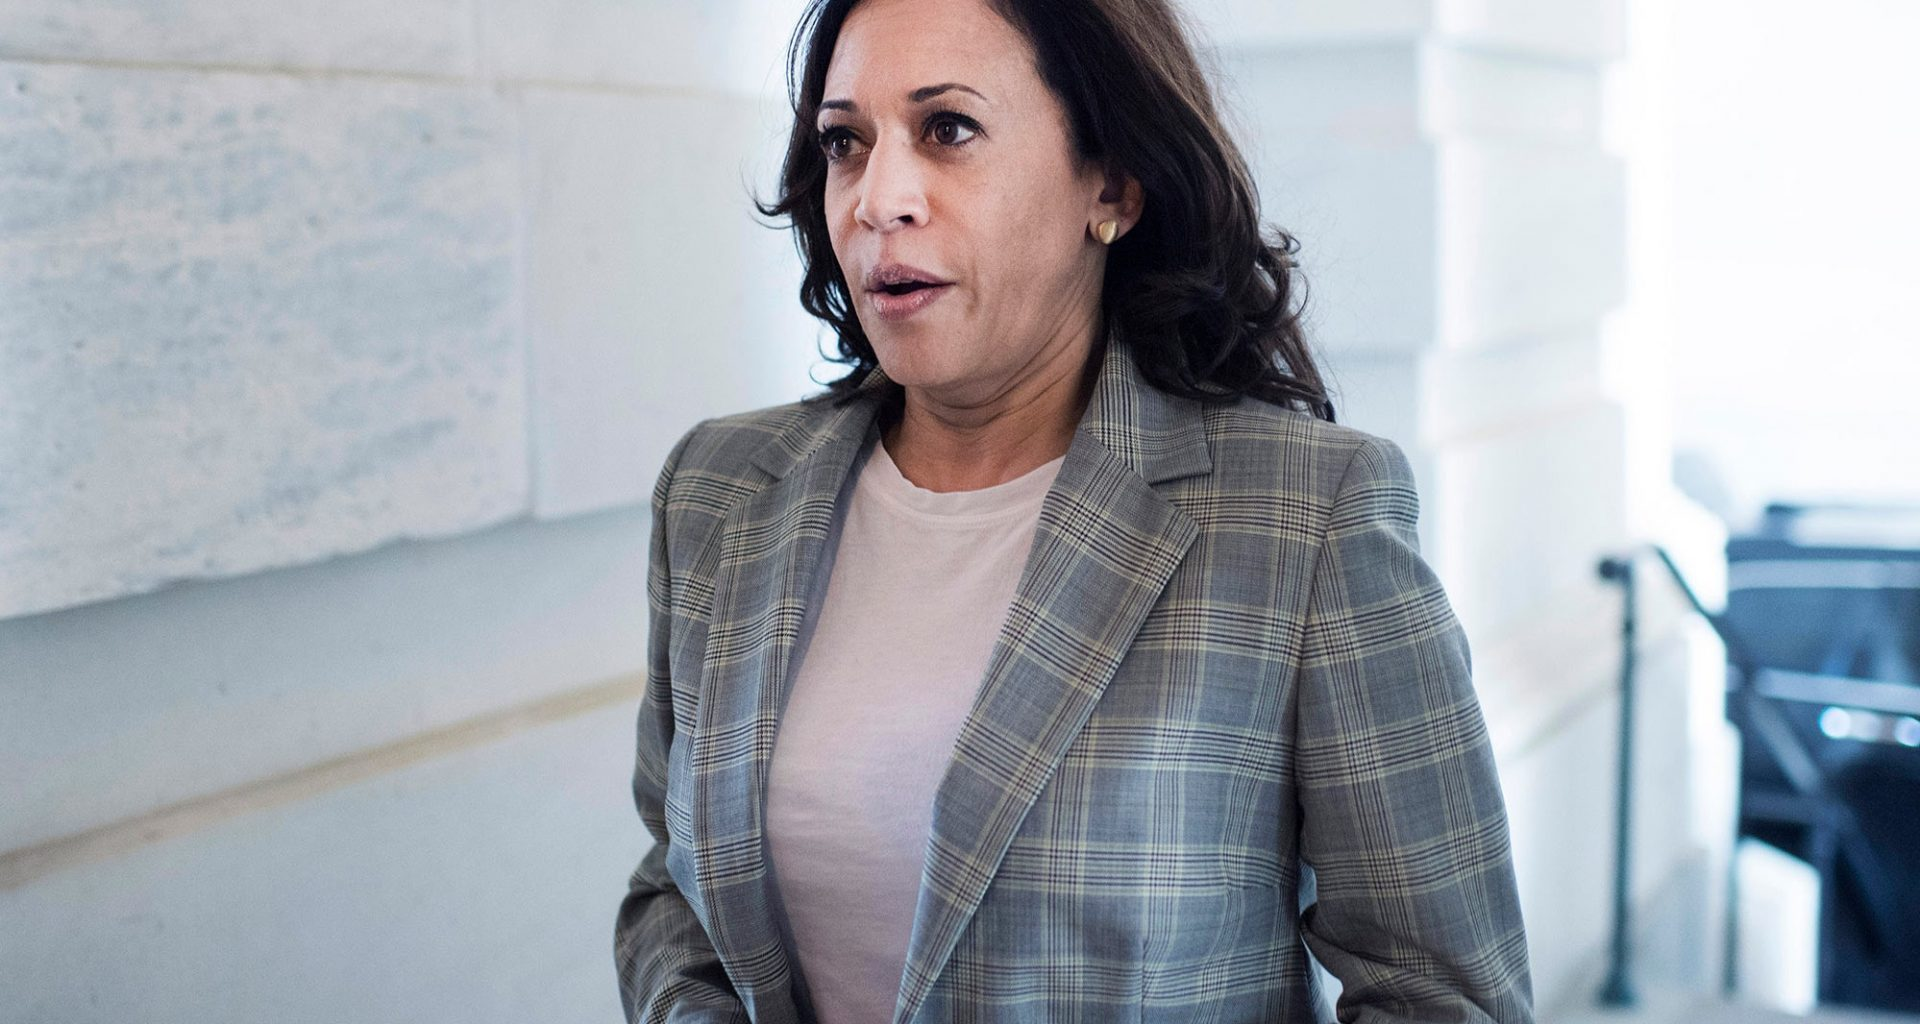 Kamala Harris in PANIC, New Details Emerge